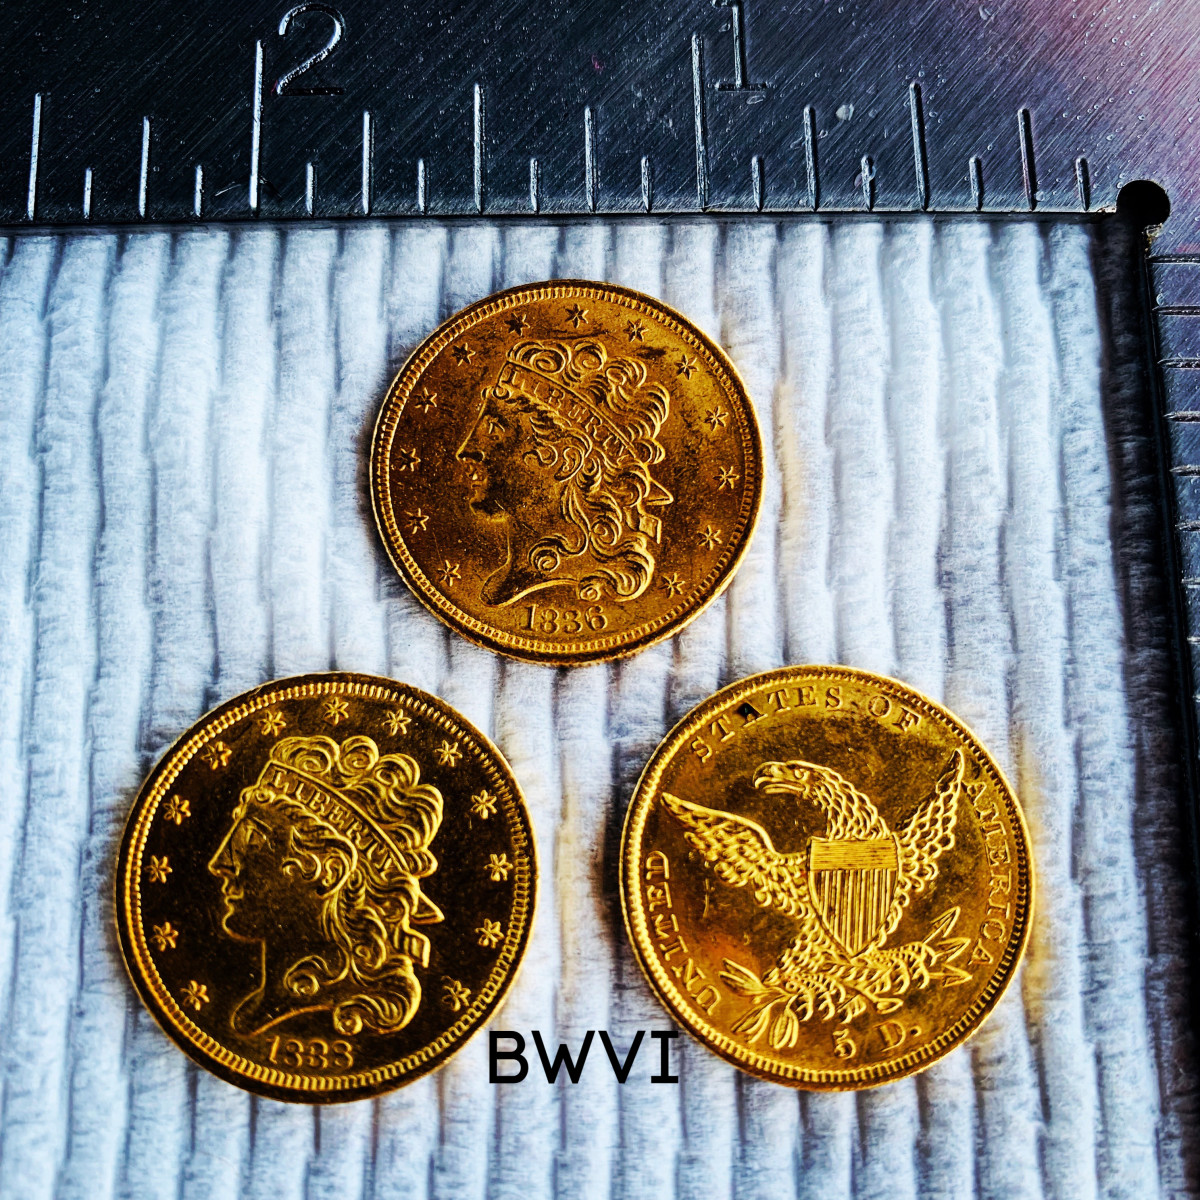 Coins recovered from the SS North Carolina Sept. 28, 2019.